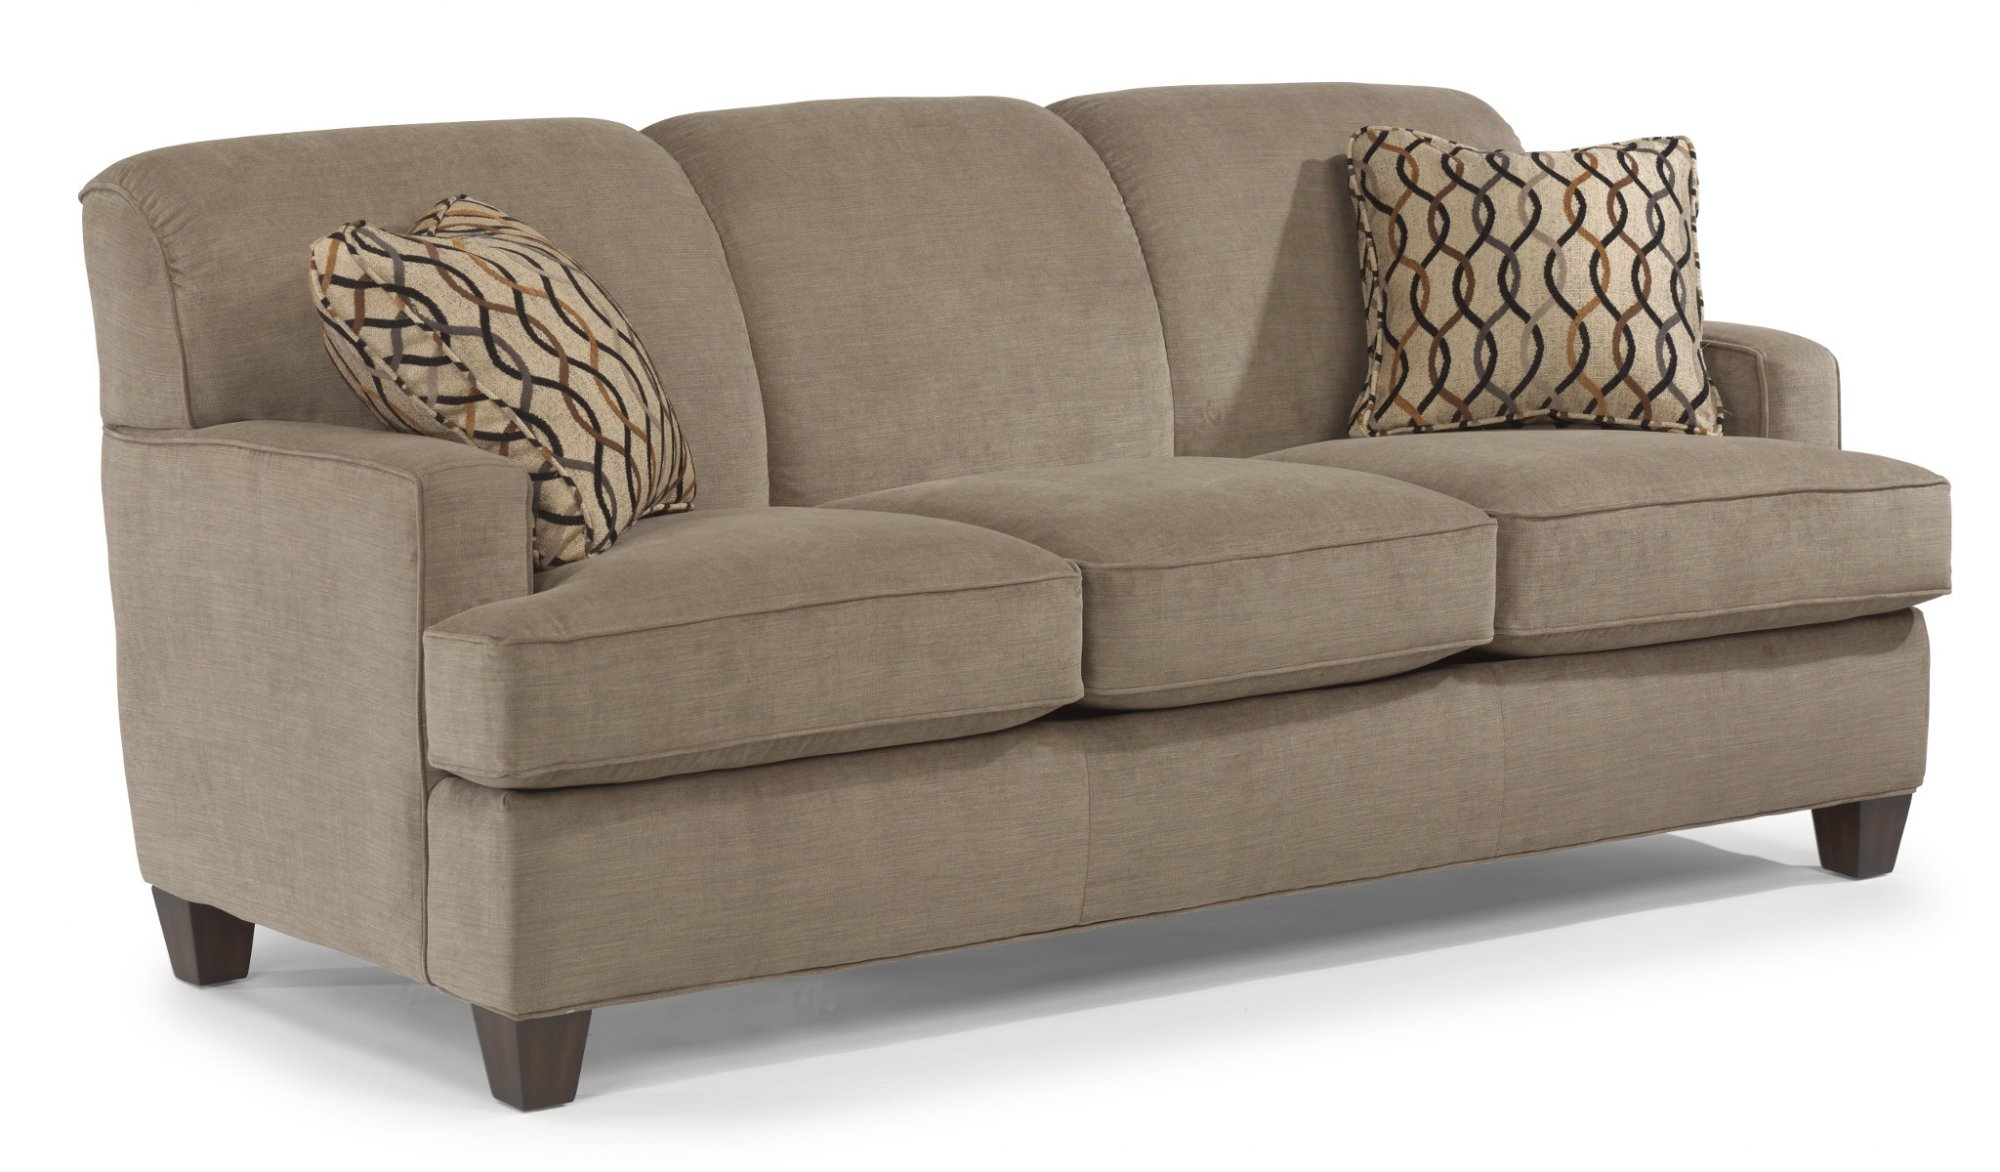 flexsteel sofas share via email download a high-resolution image KNGOLXV